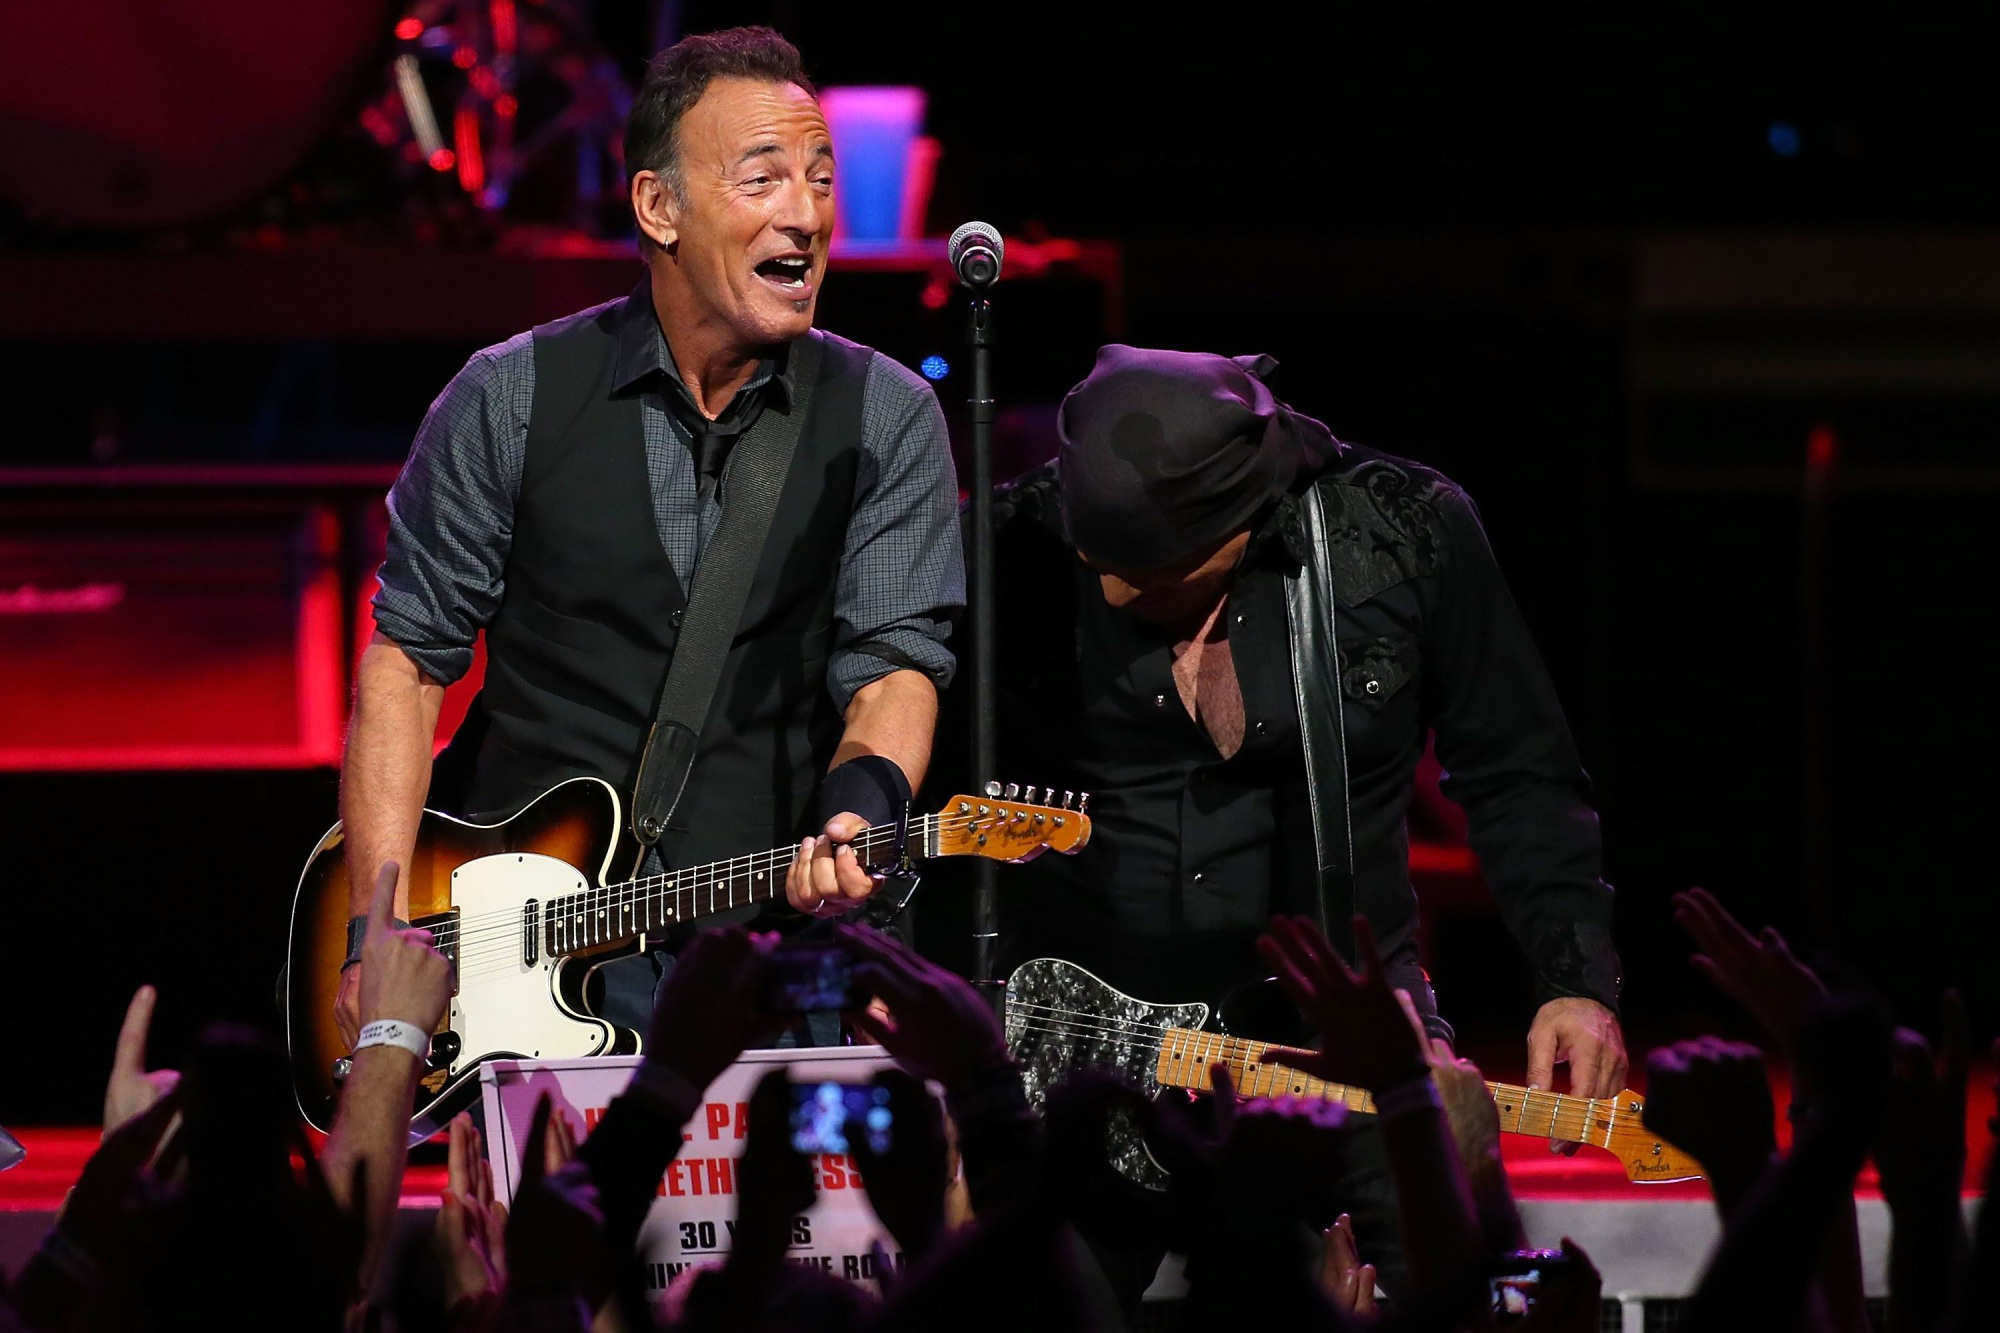 The Boss is back: Springsteen to visit Perth again in January